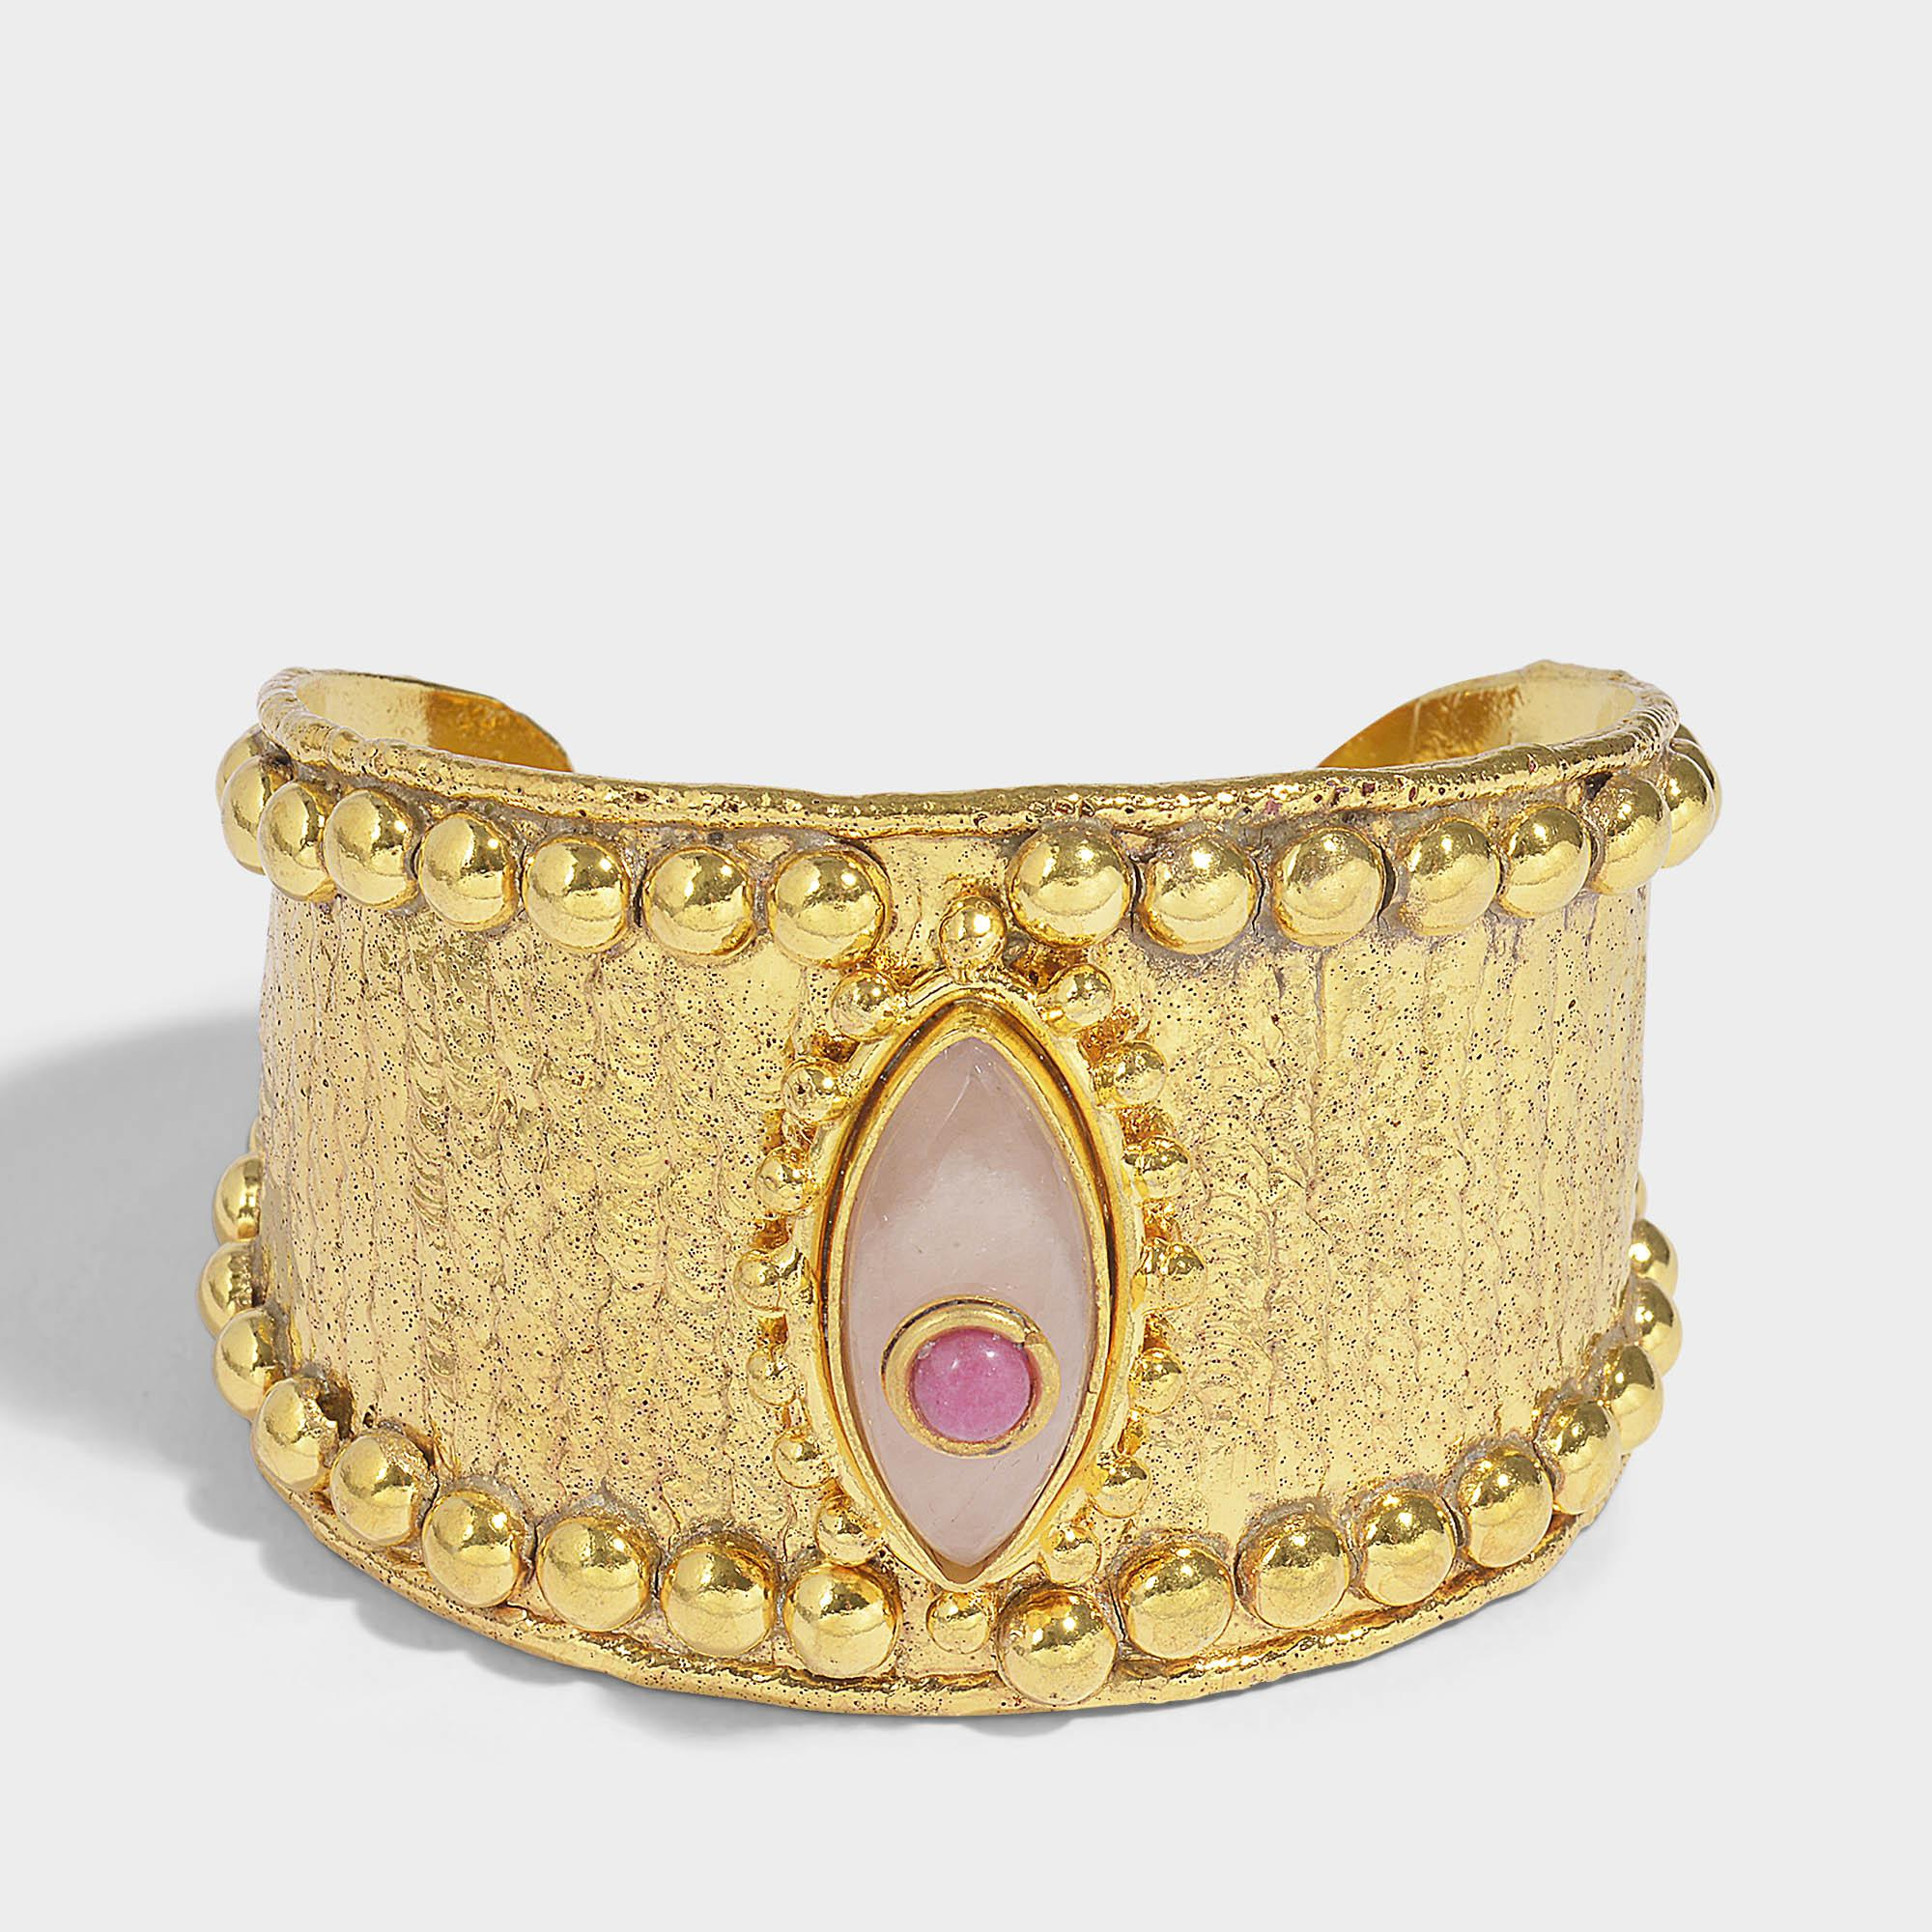 Sylvia Toledano Byzance Cuff Bracelet in Gold-Plated Brass with White Pearls ynMhcWpQD